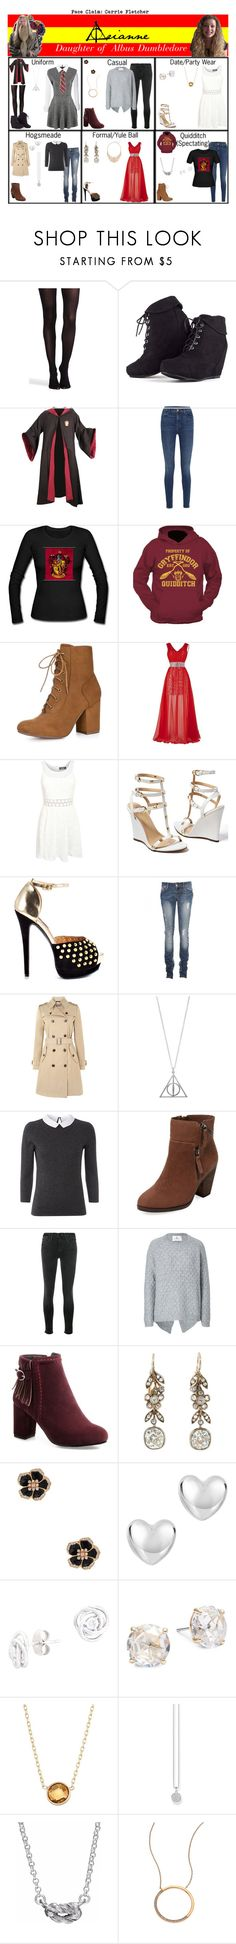 """Arianne. Daughter of Dumbledore."" by elmoakepoke ❤ liked on Polyvore featuring Percival, SPANX, MARA, J Brand, Allegra K, Pilot, Venus, Shoe Republic LA, Hallhuber and White Stuff"